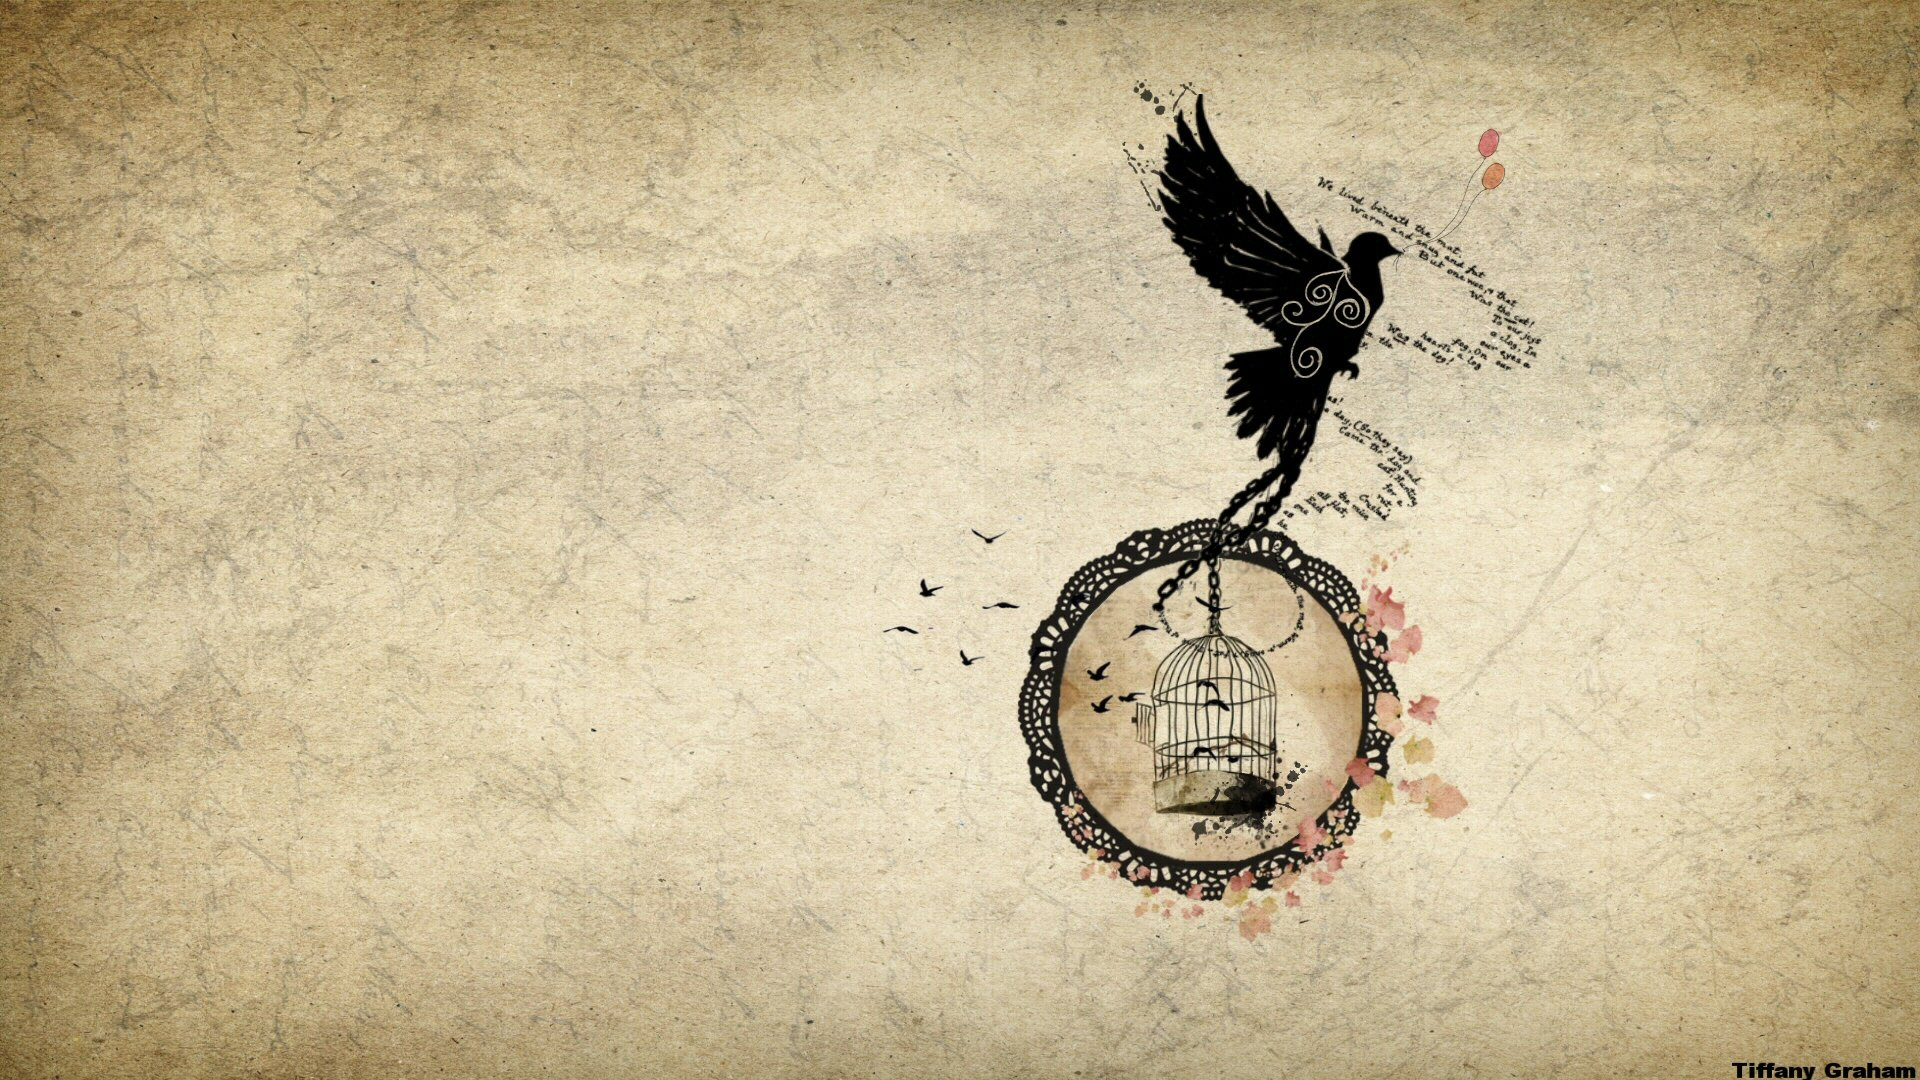 hipster illusion freedom wallpaper   ForWallpapercom 1920x1080